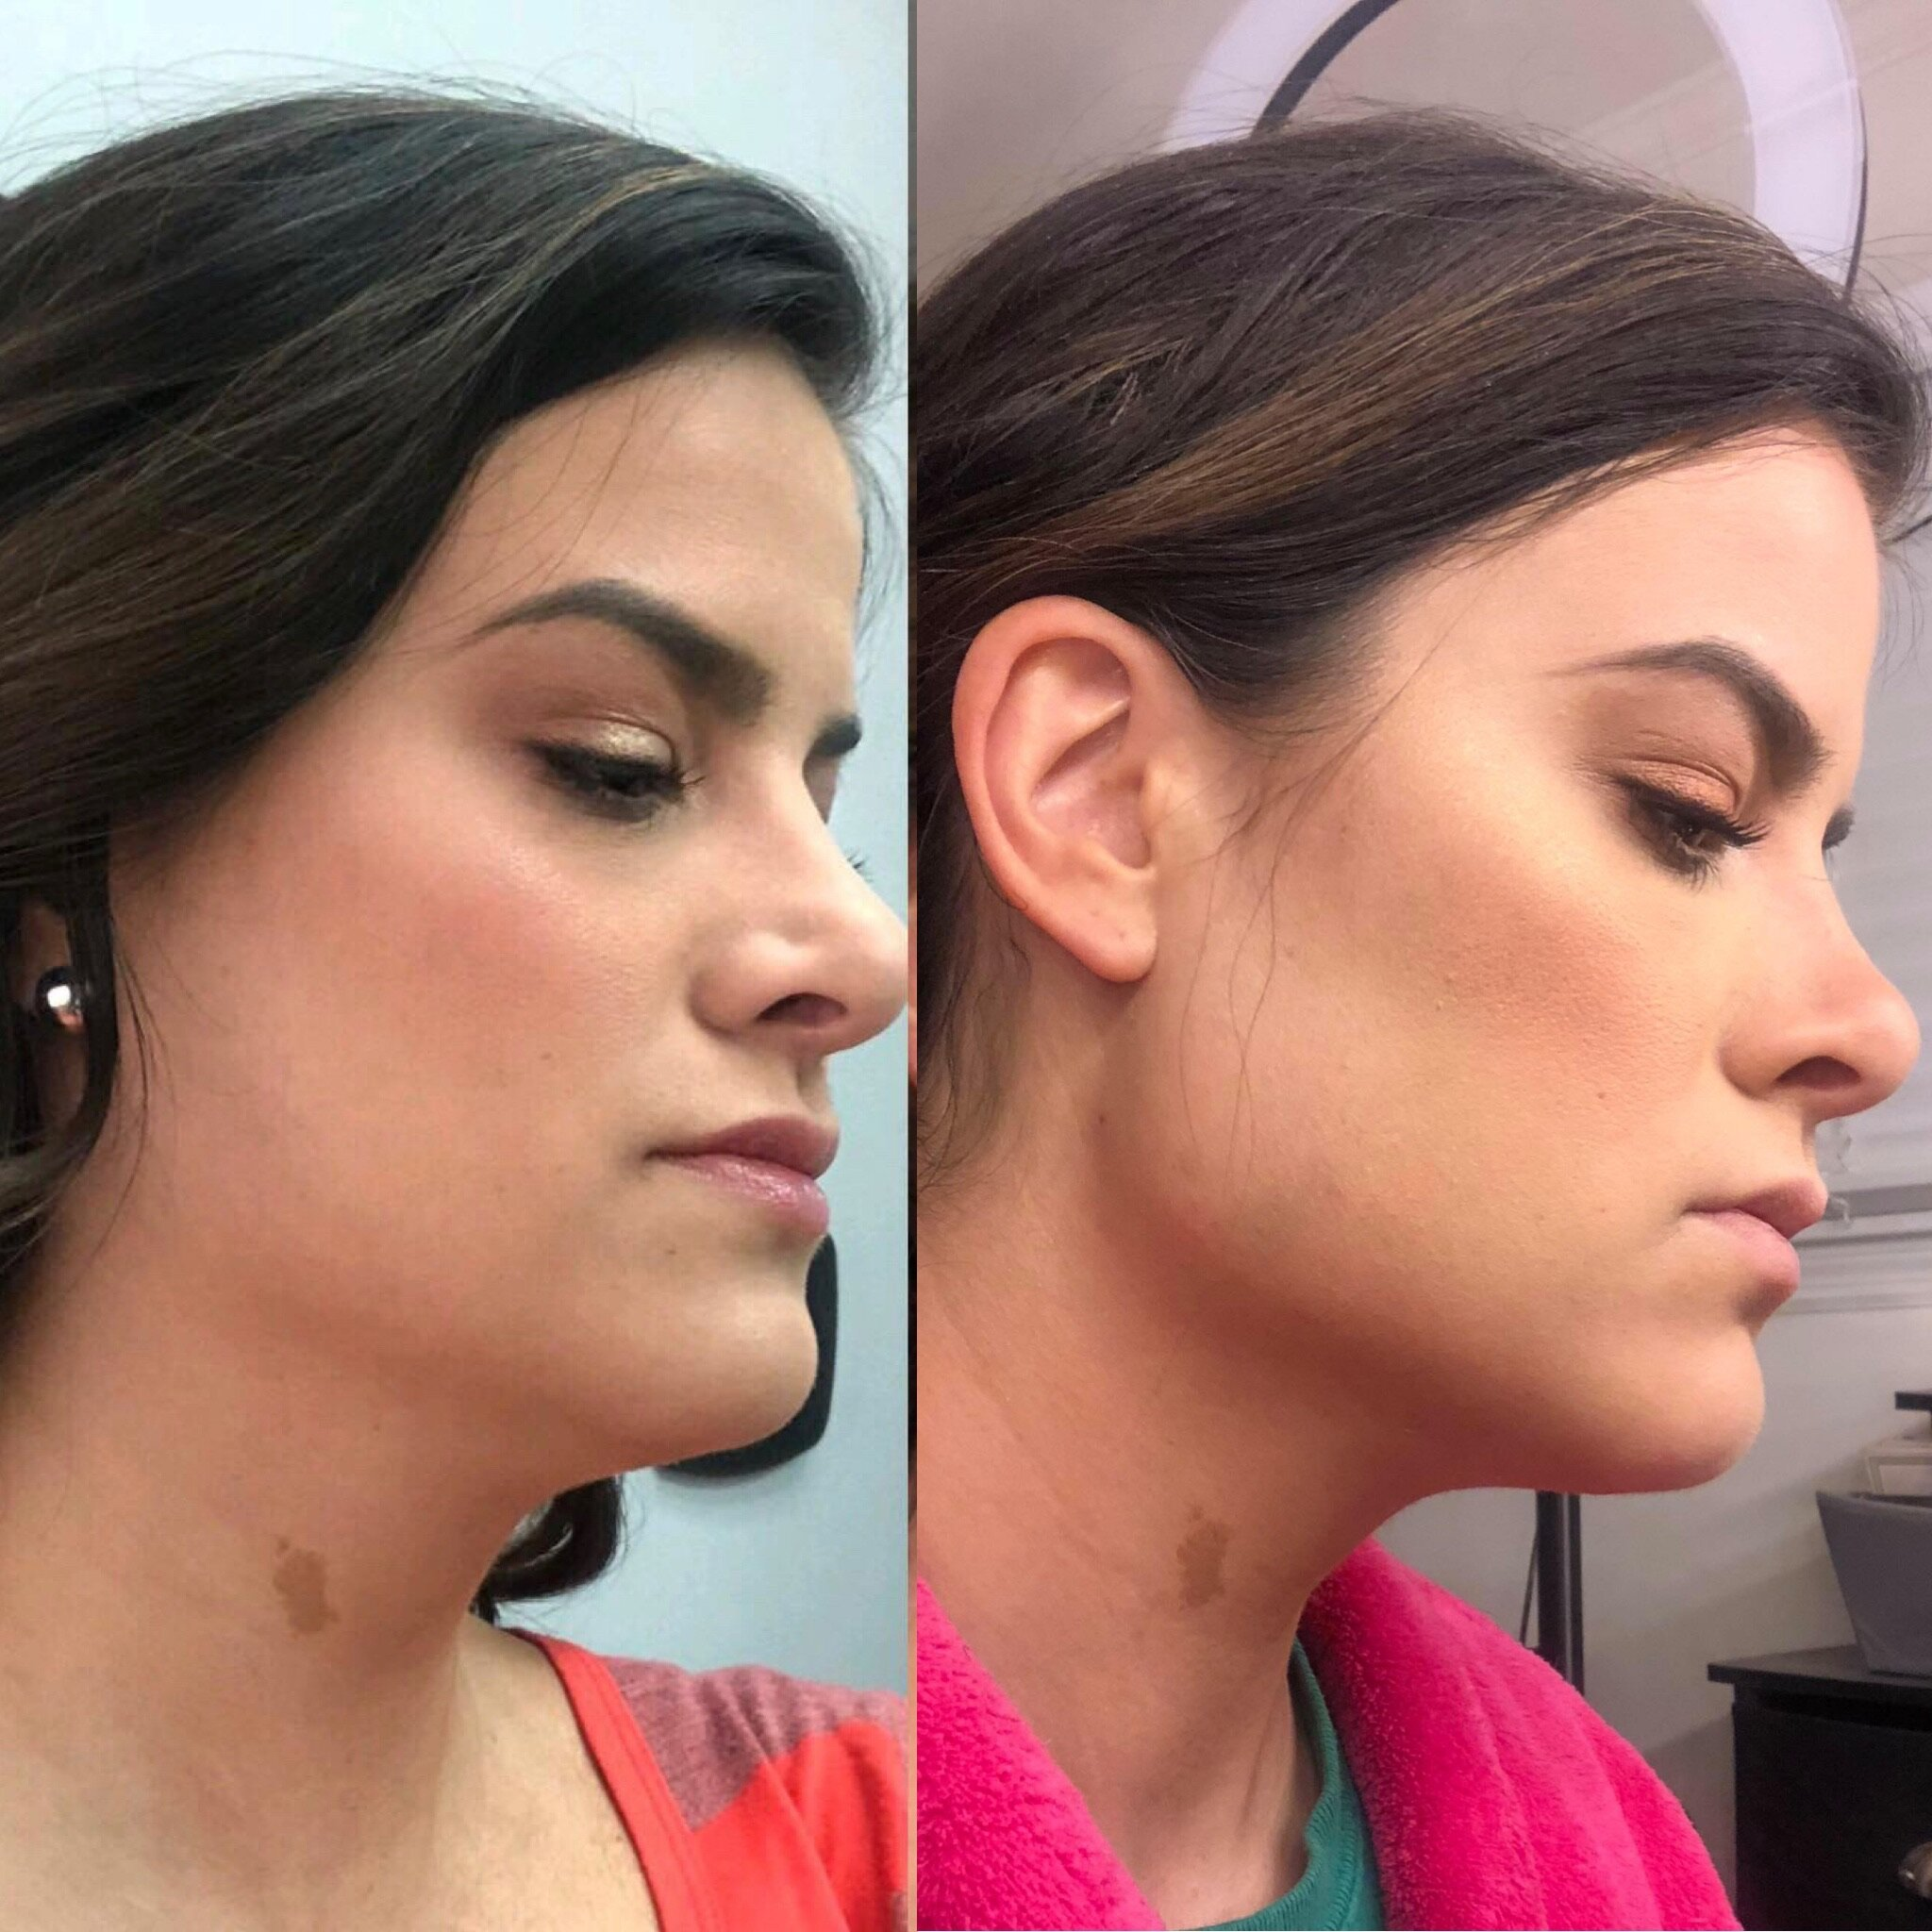 The Complete Jaw Line Package - One of out most comprehensive packages! We use lifting threads, smooth threads, and Radiesse filler to pull the skin tight around the jaw, build collagen, and use filler to add definition! Seperately, these items would cost $2,200, but combined as a package, you'll only pay $1,500!